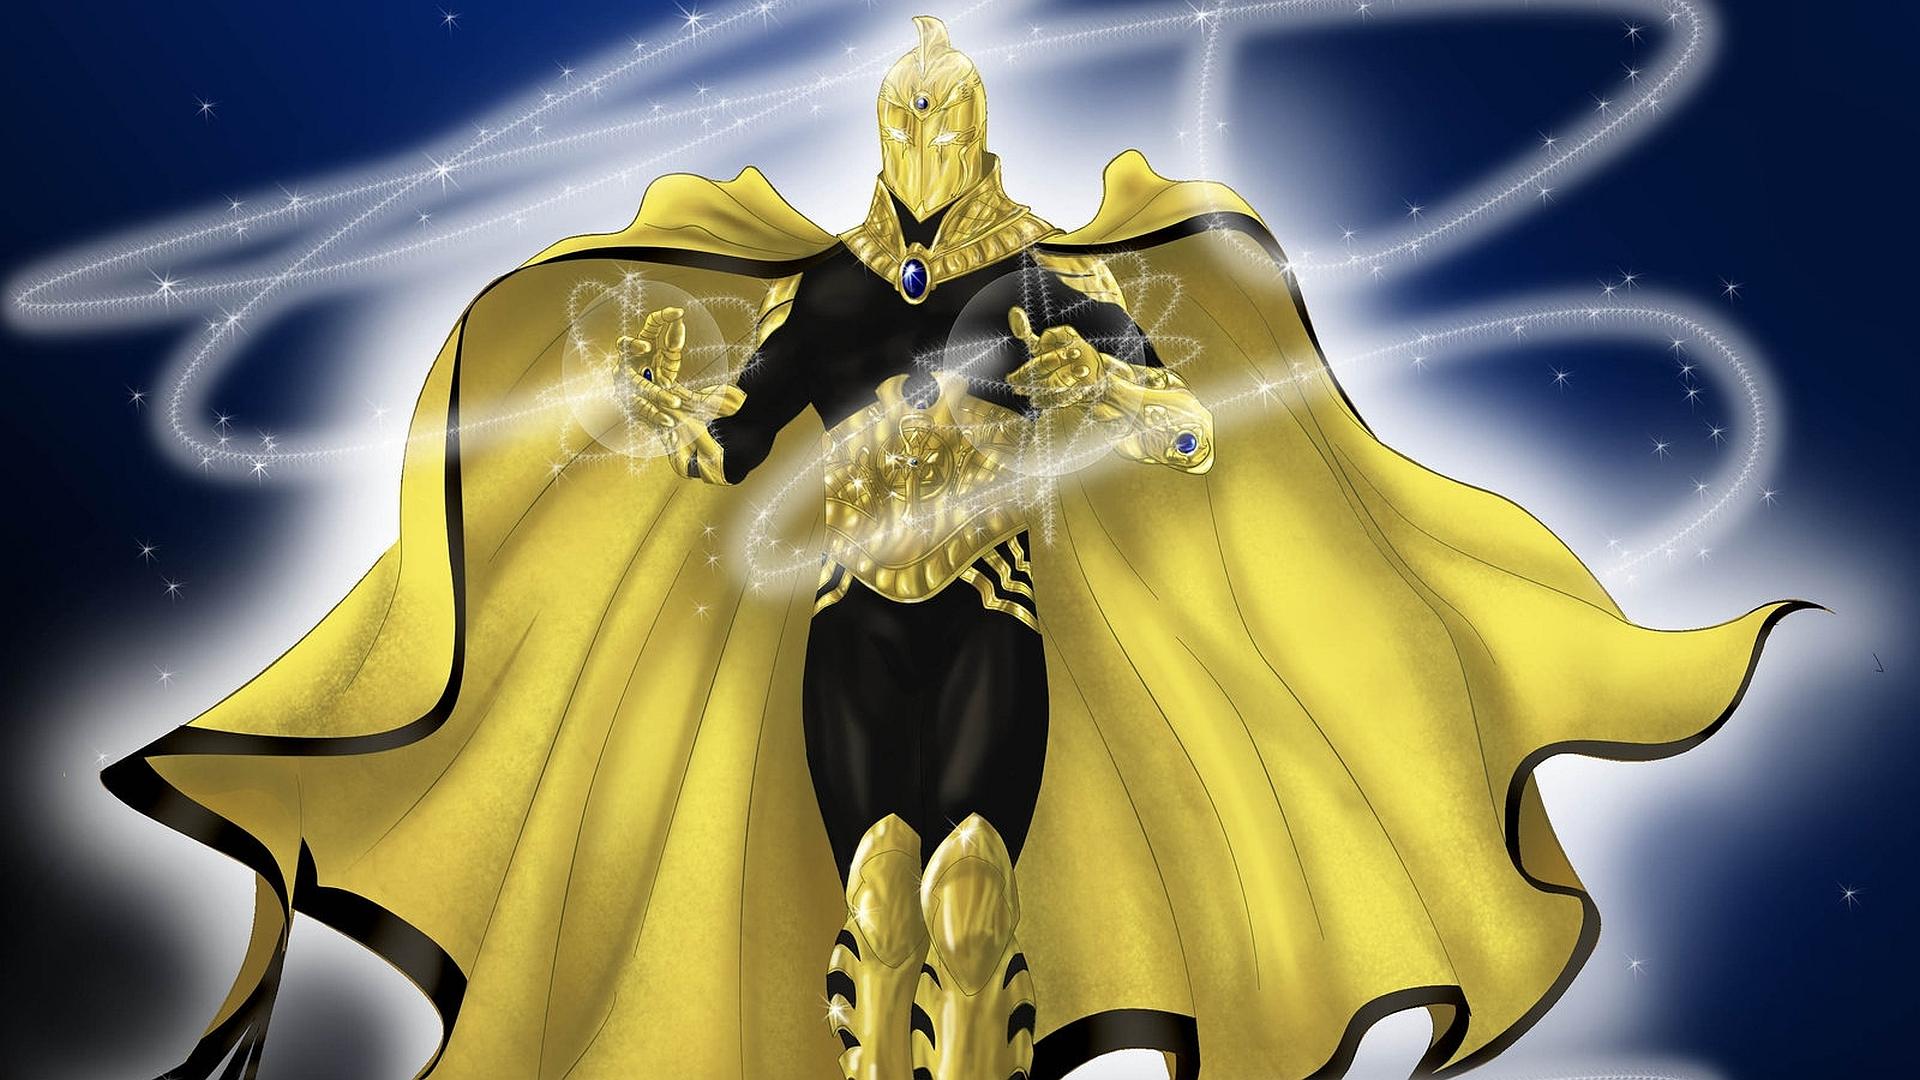 5 Dr Fate HD Wallpapers Backgrounds 1920x1080